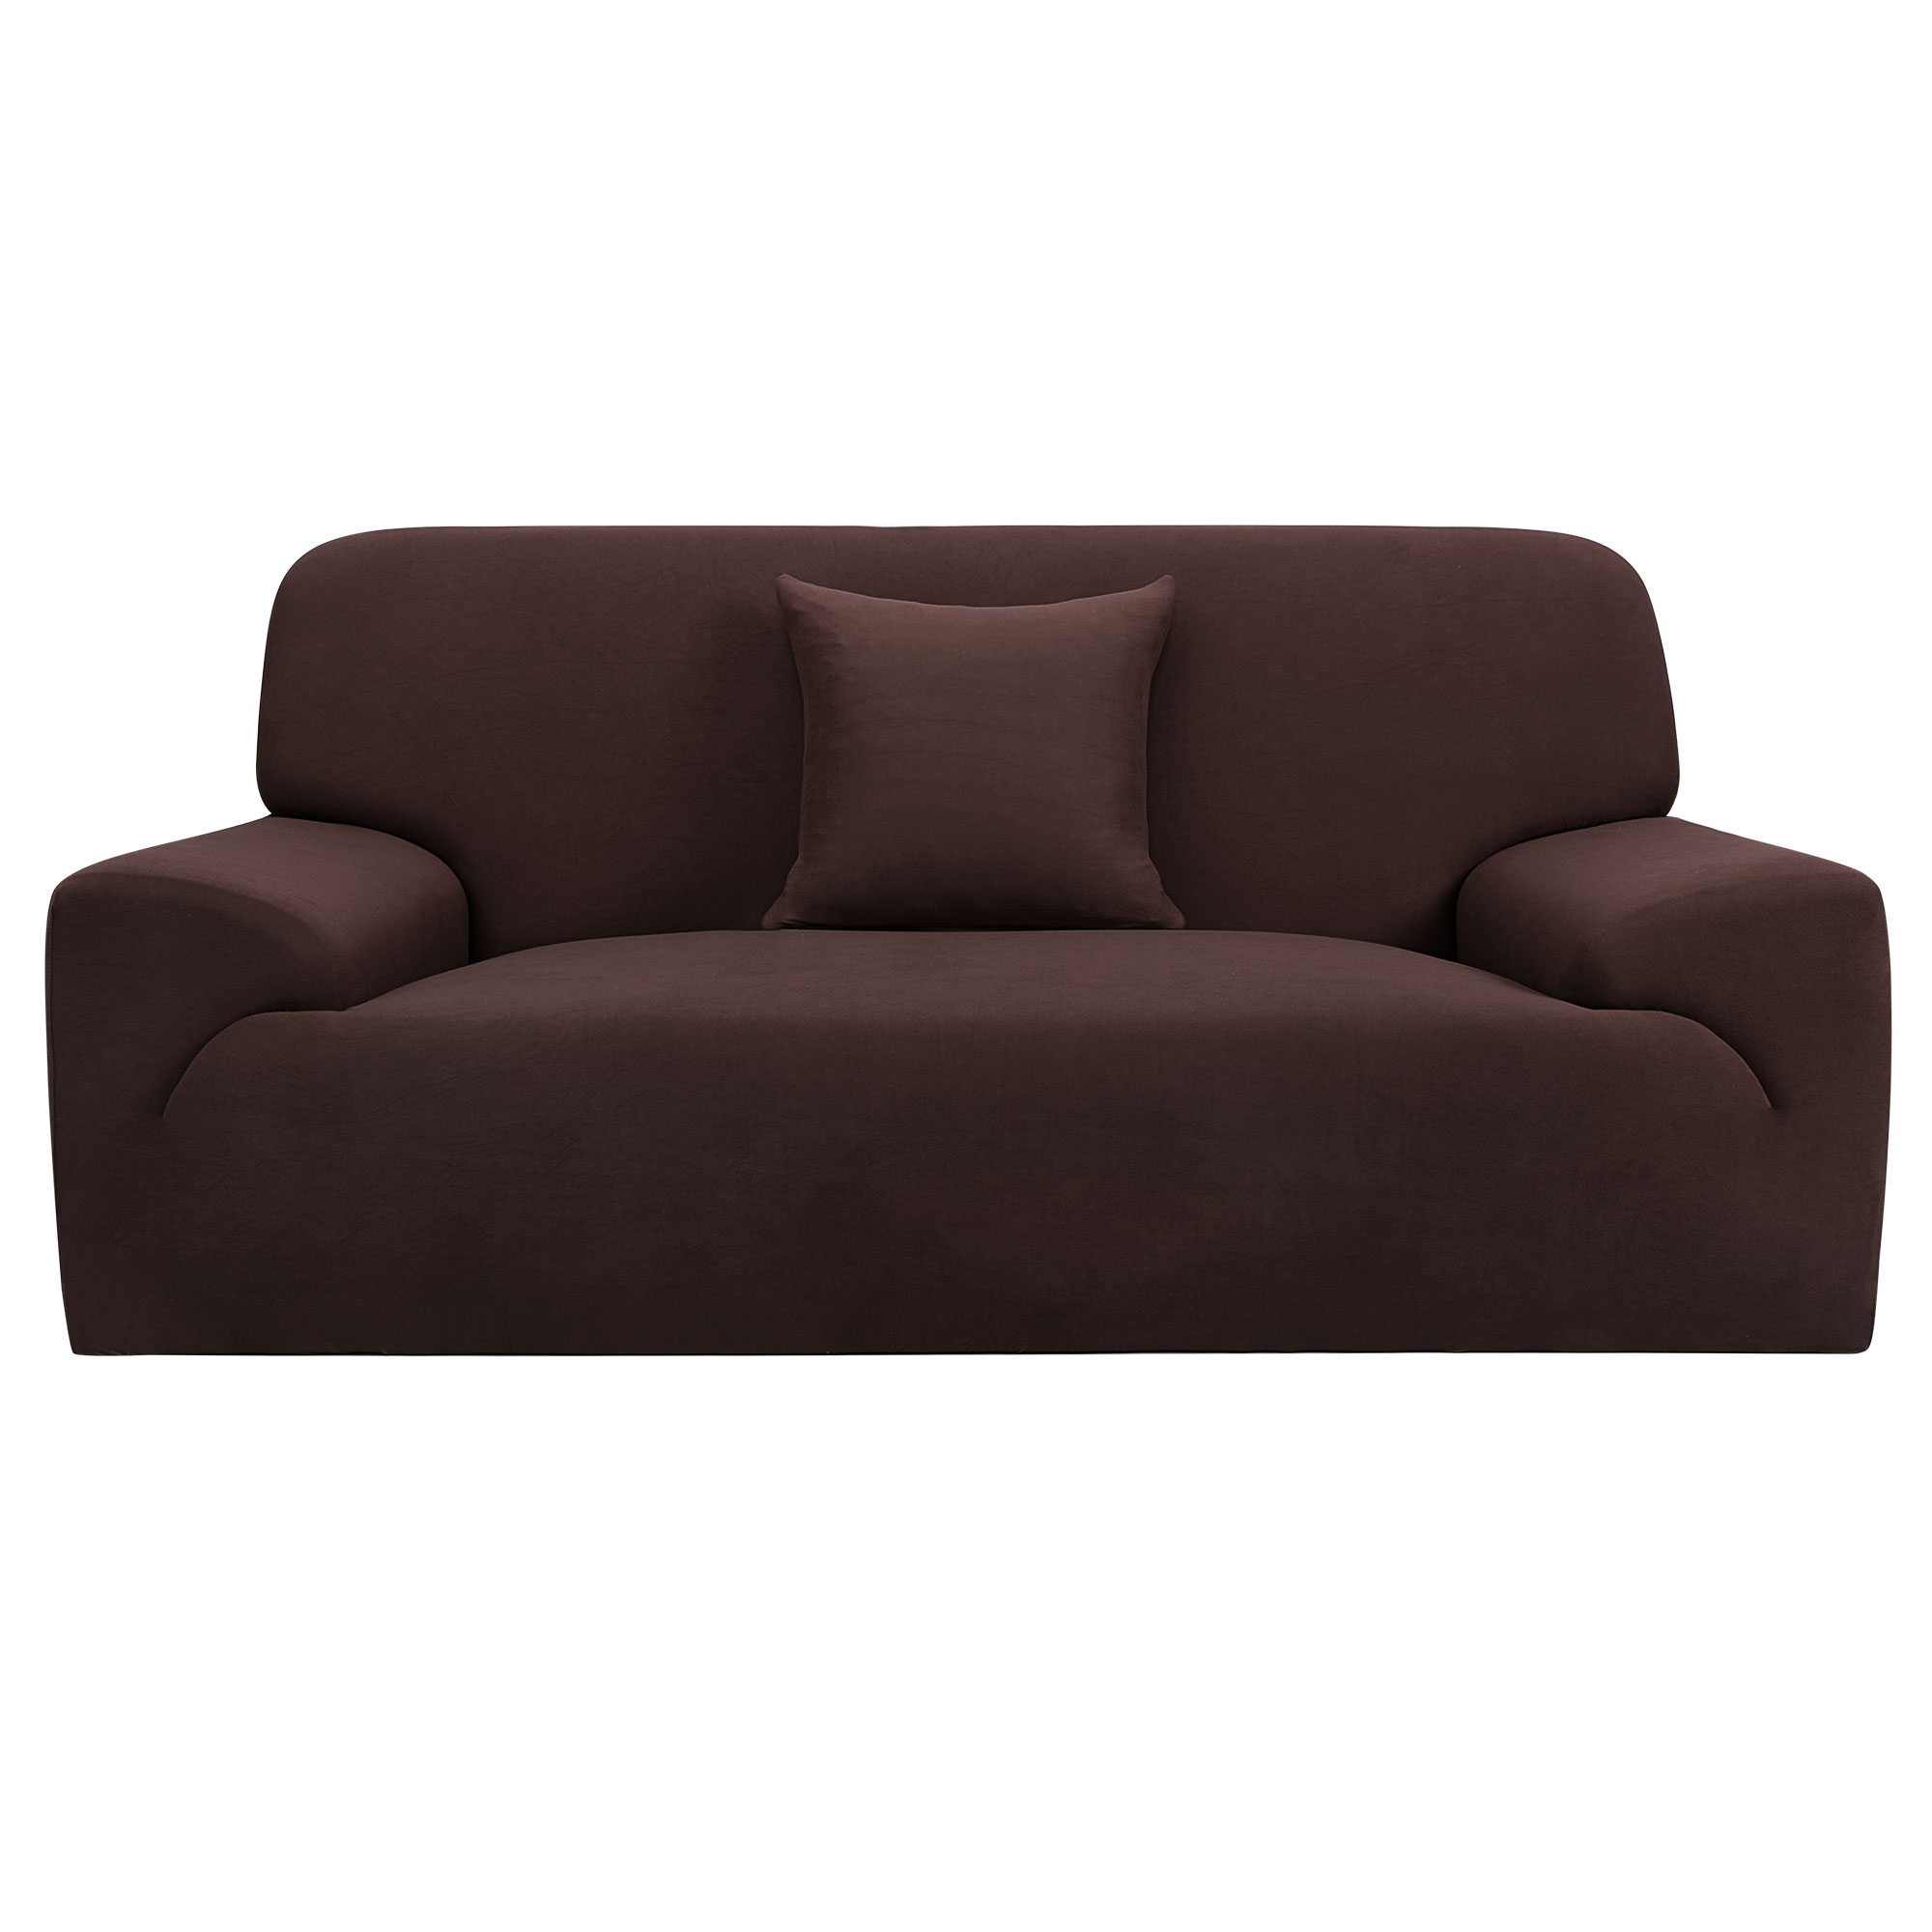 Home Sofa Couch Loveseat Stretch Cover Protector Chocolate Color 55''-74''